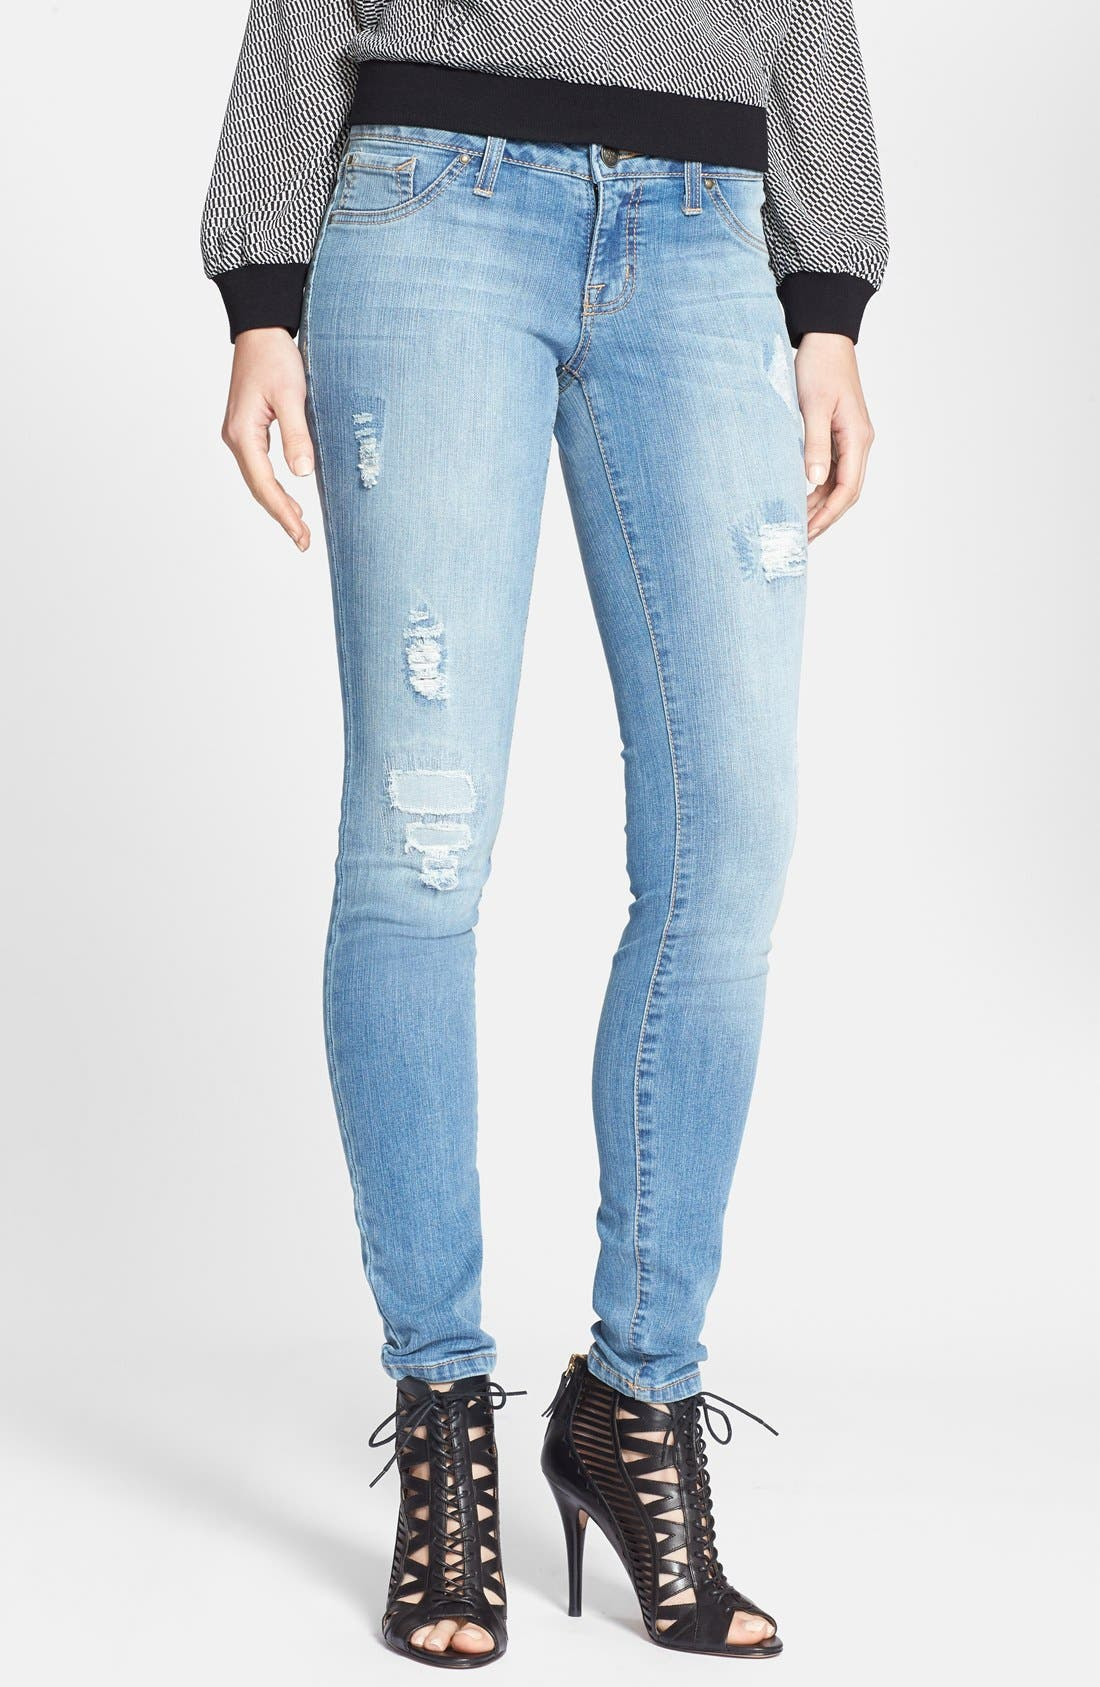 Alternate Image 1 Selected - Jessica Simpson 'Kiss Me' Deconstructed Skinny Jeans (Powder Blue/Dynamic)